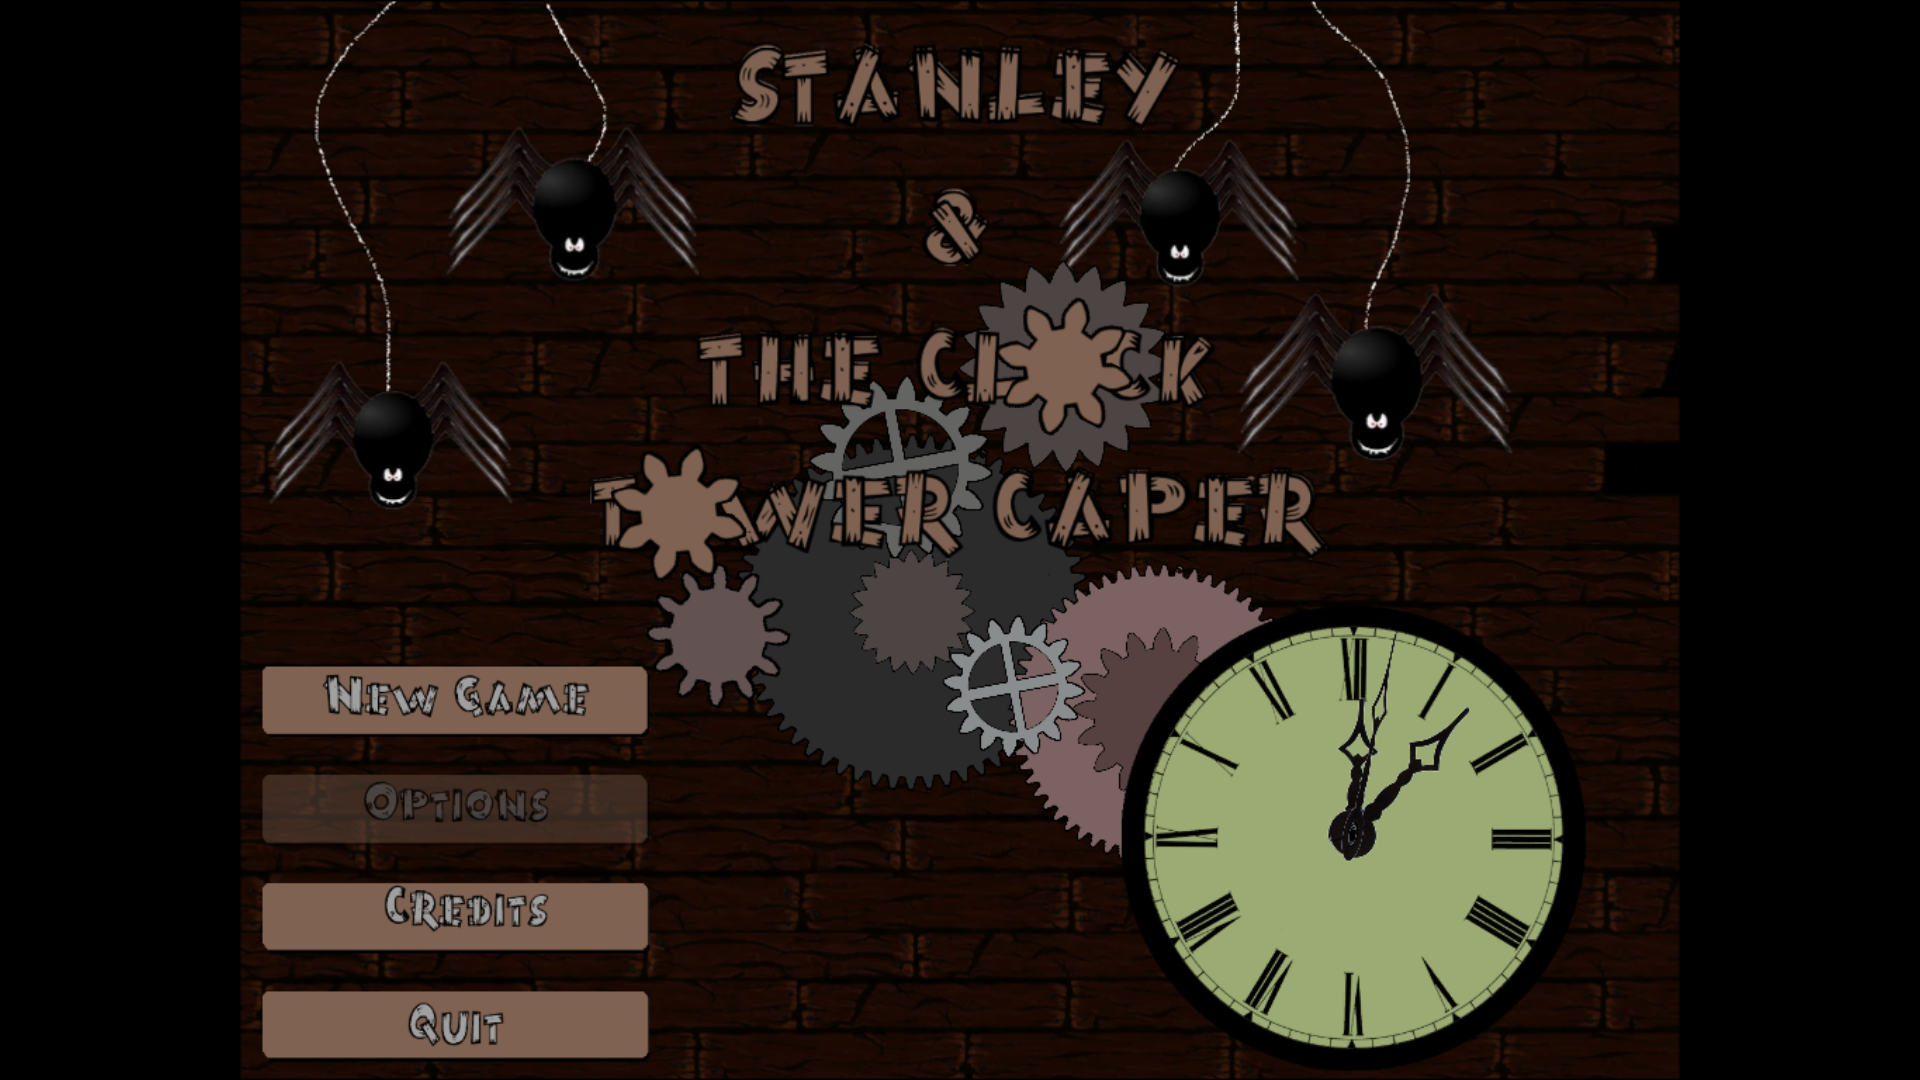 Stanley and the Clock Tower Caper